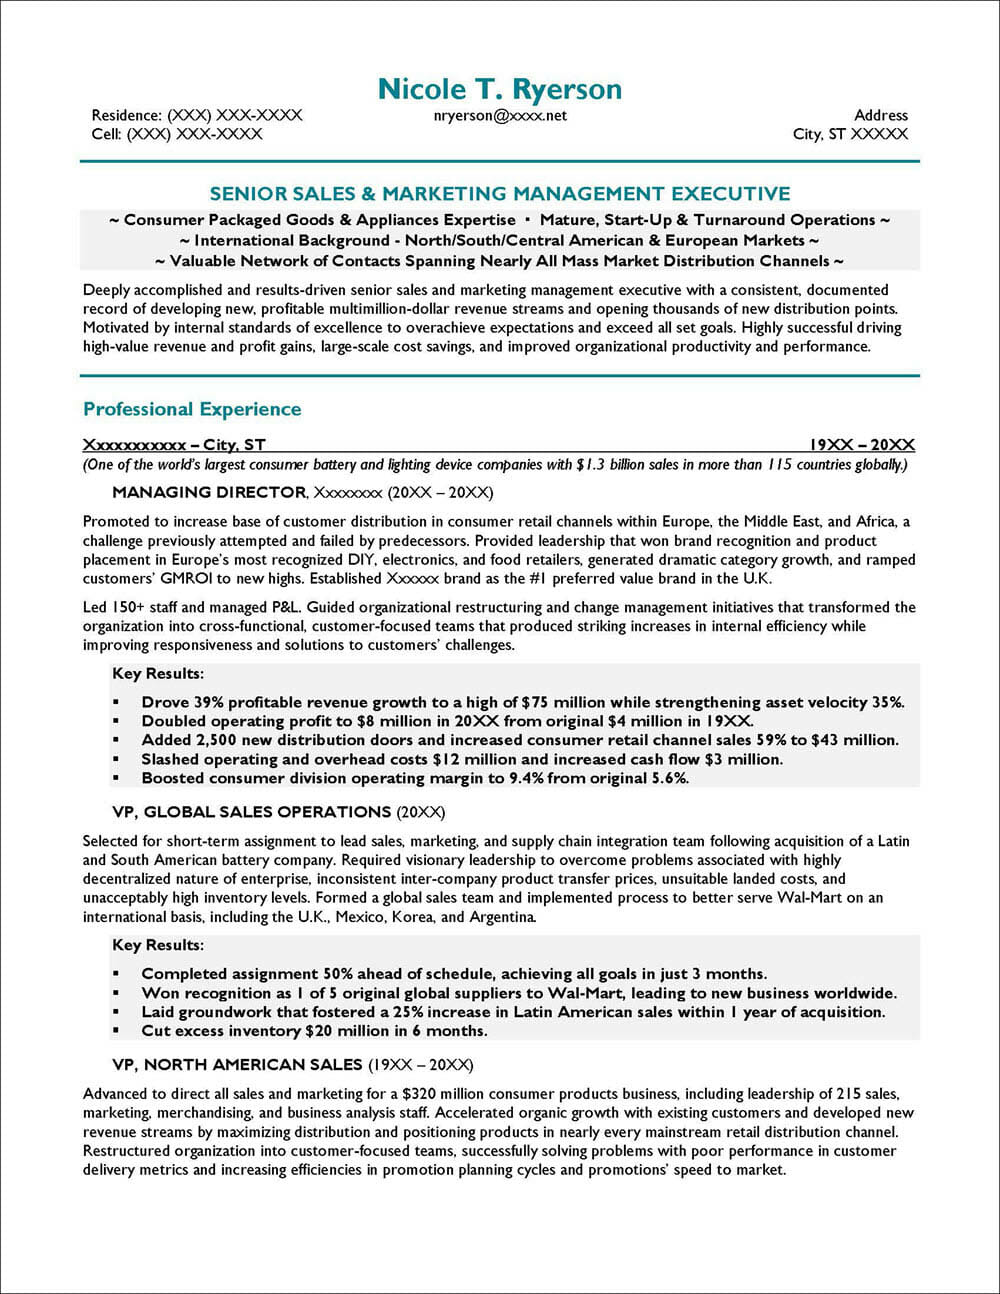 resume objective examples distinctive career services business management manager example Resume Business Management Resume Objective